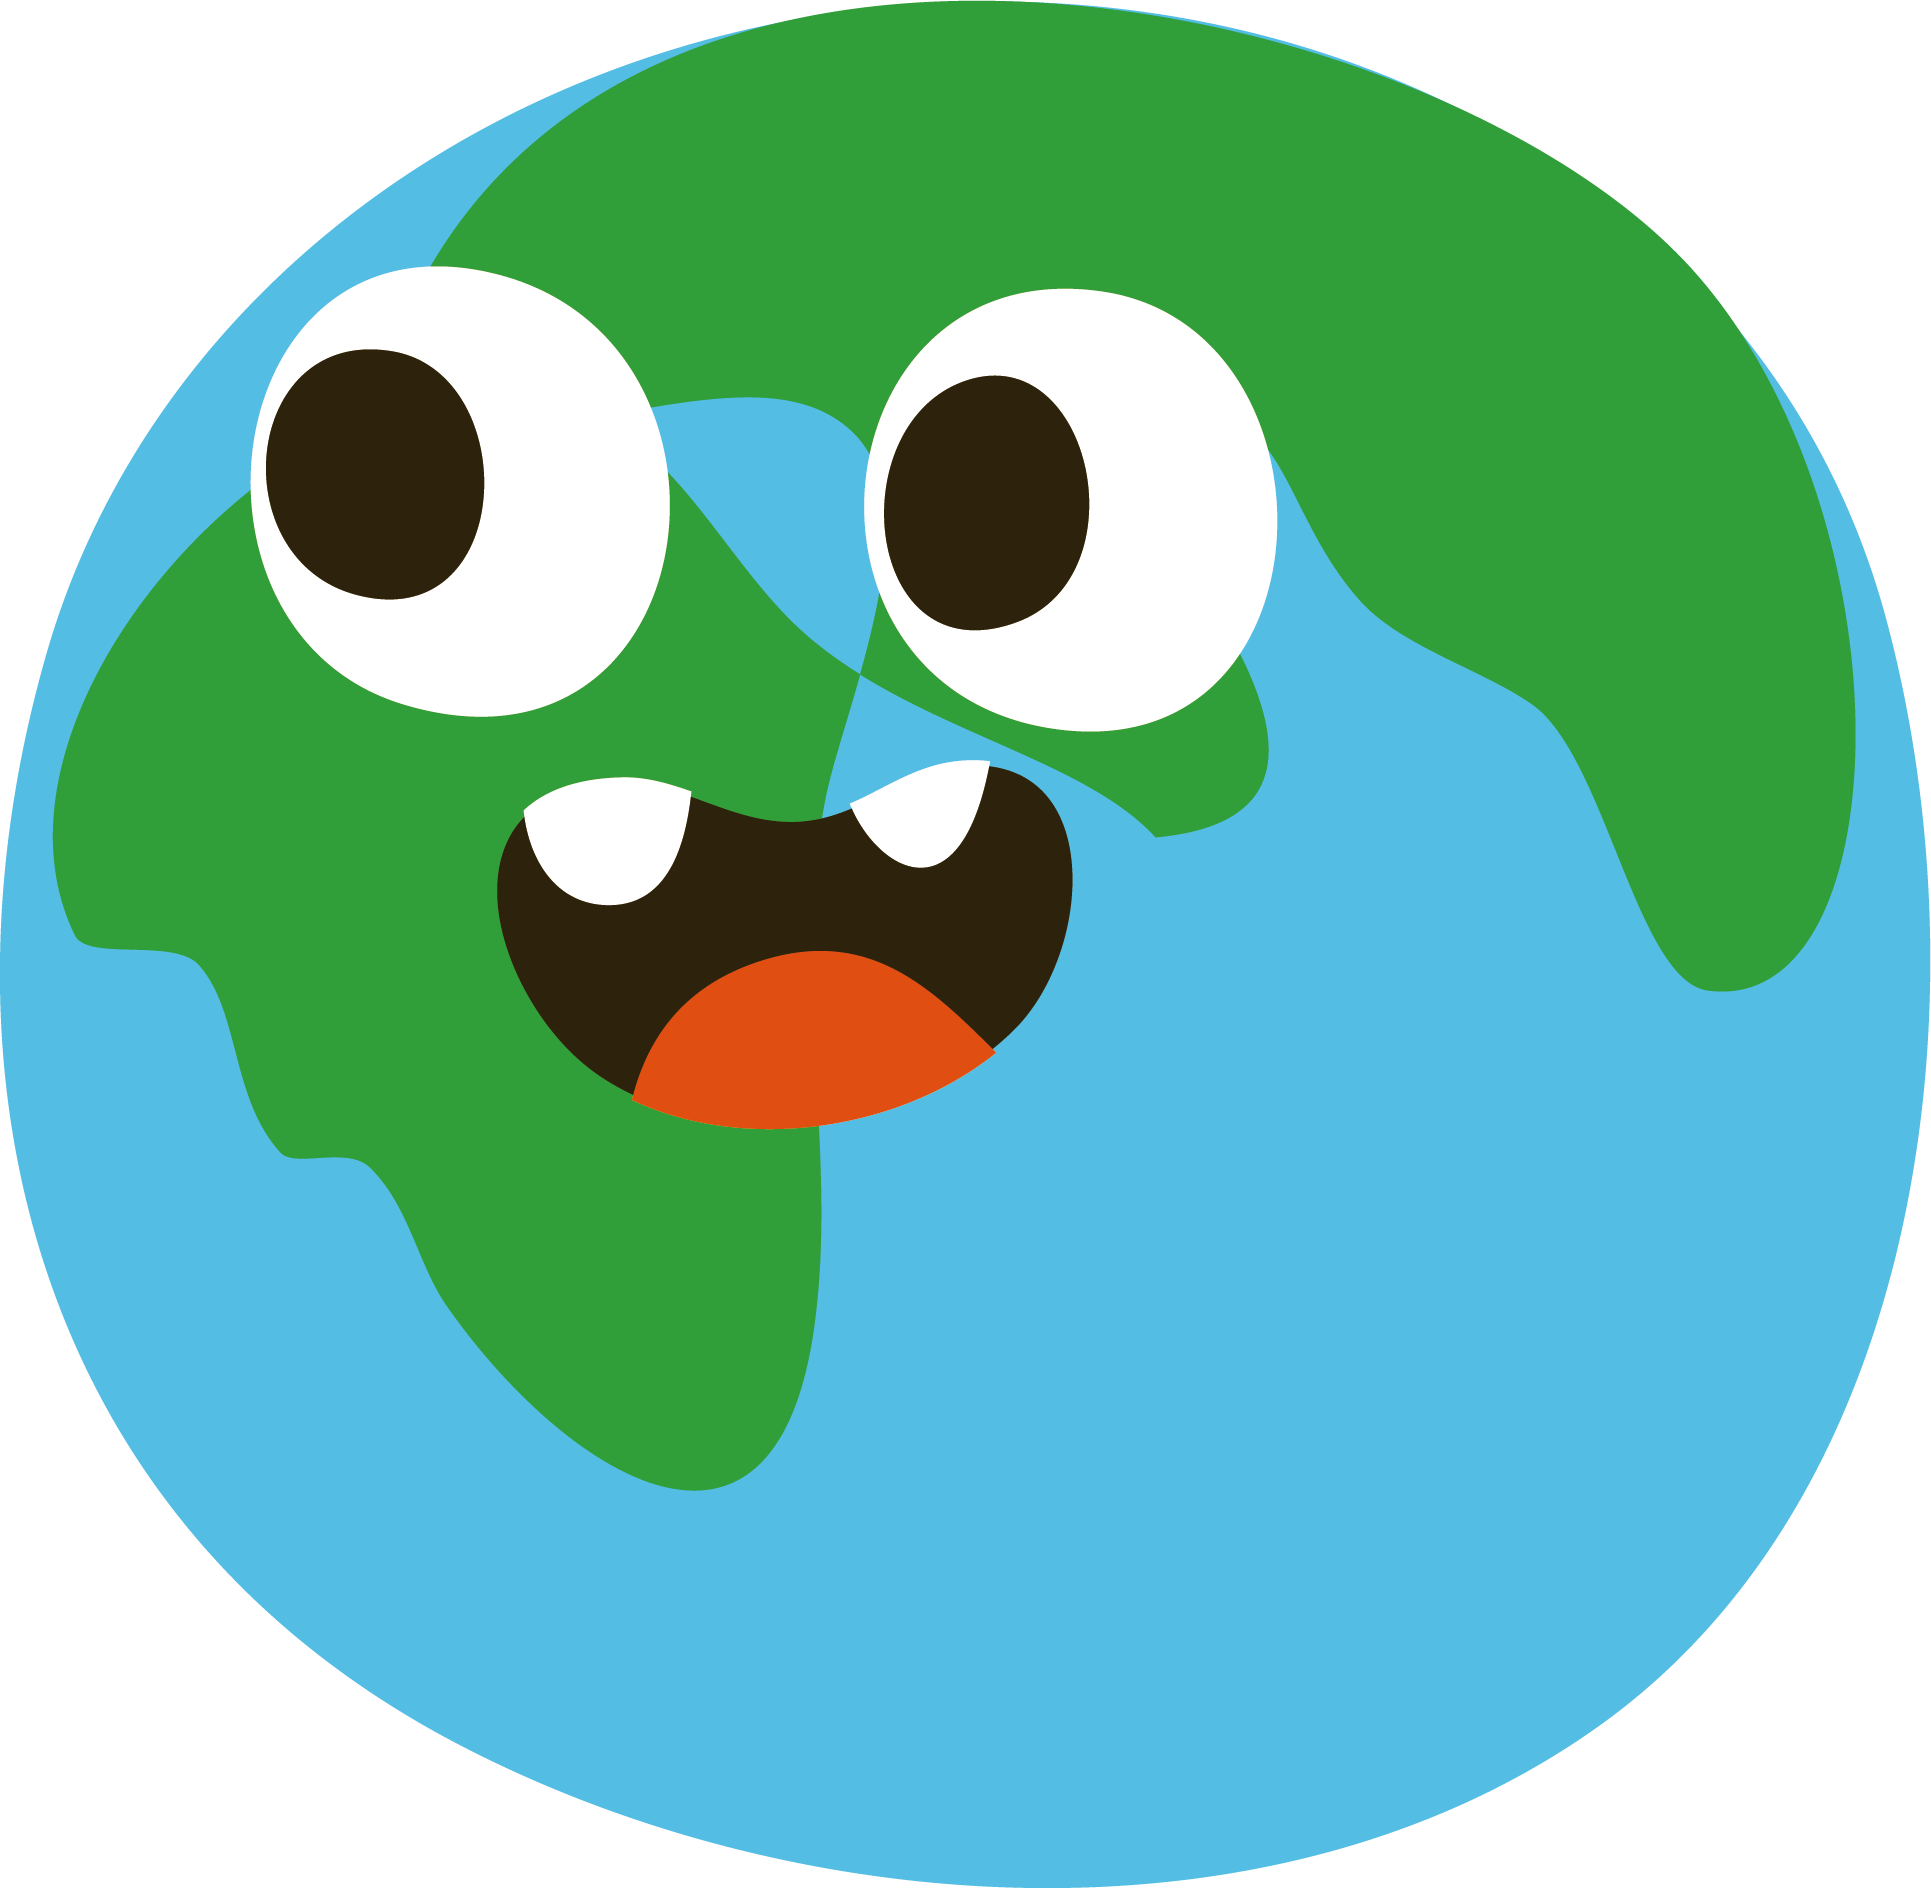 Planets clipart green planet. The nine solar system